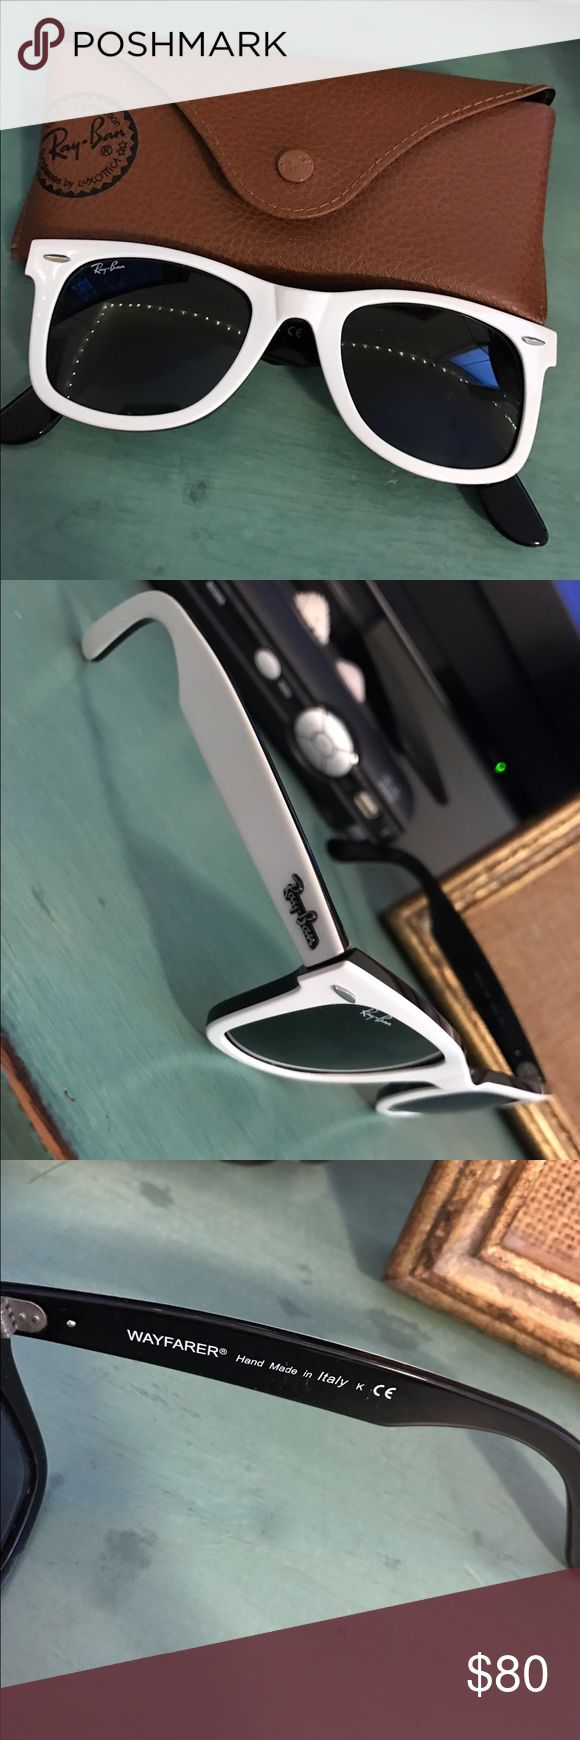 White Ray-Ban Wayfarer Sunglasses Comes with case! Lightly used but great condition! Accessories Sunglasses